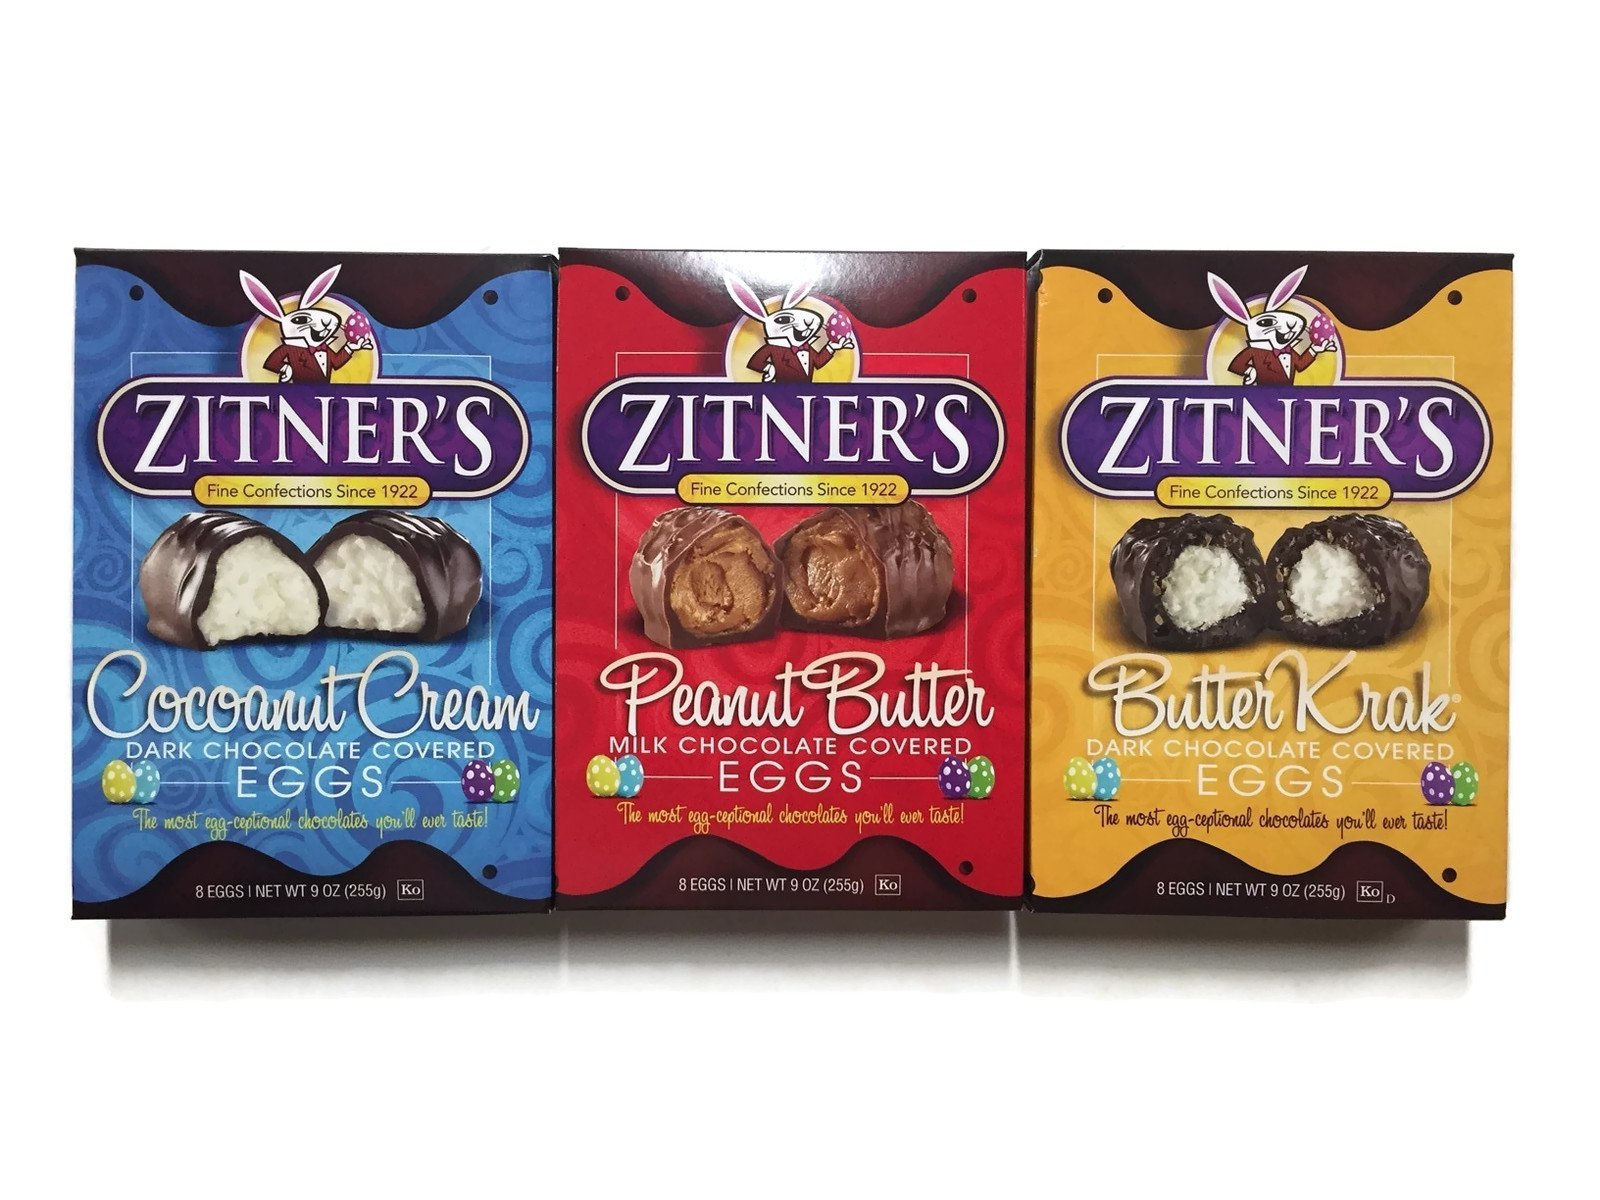 Zitner's Chocolate Eggs Variety Set: Cocoanut Cream, Peanut Butter, Butter Krak, 8 Eggs, 3 Count 9 oz. Boxes (1 of Each)